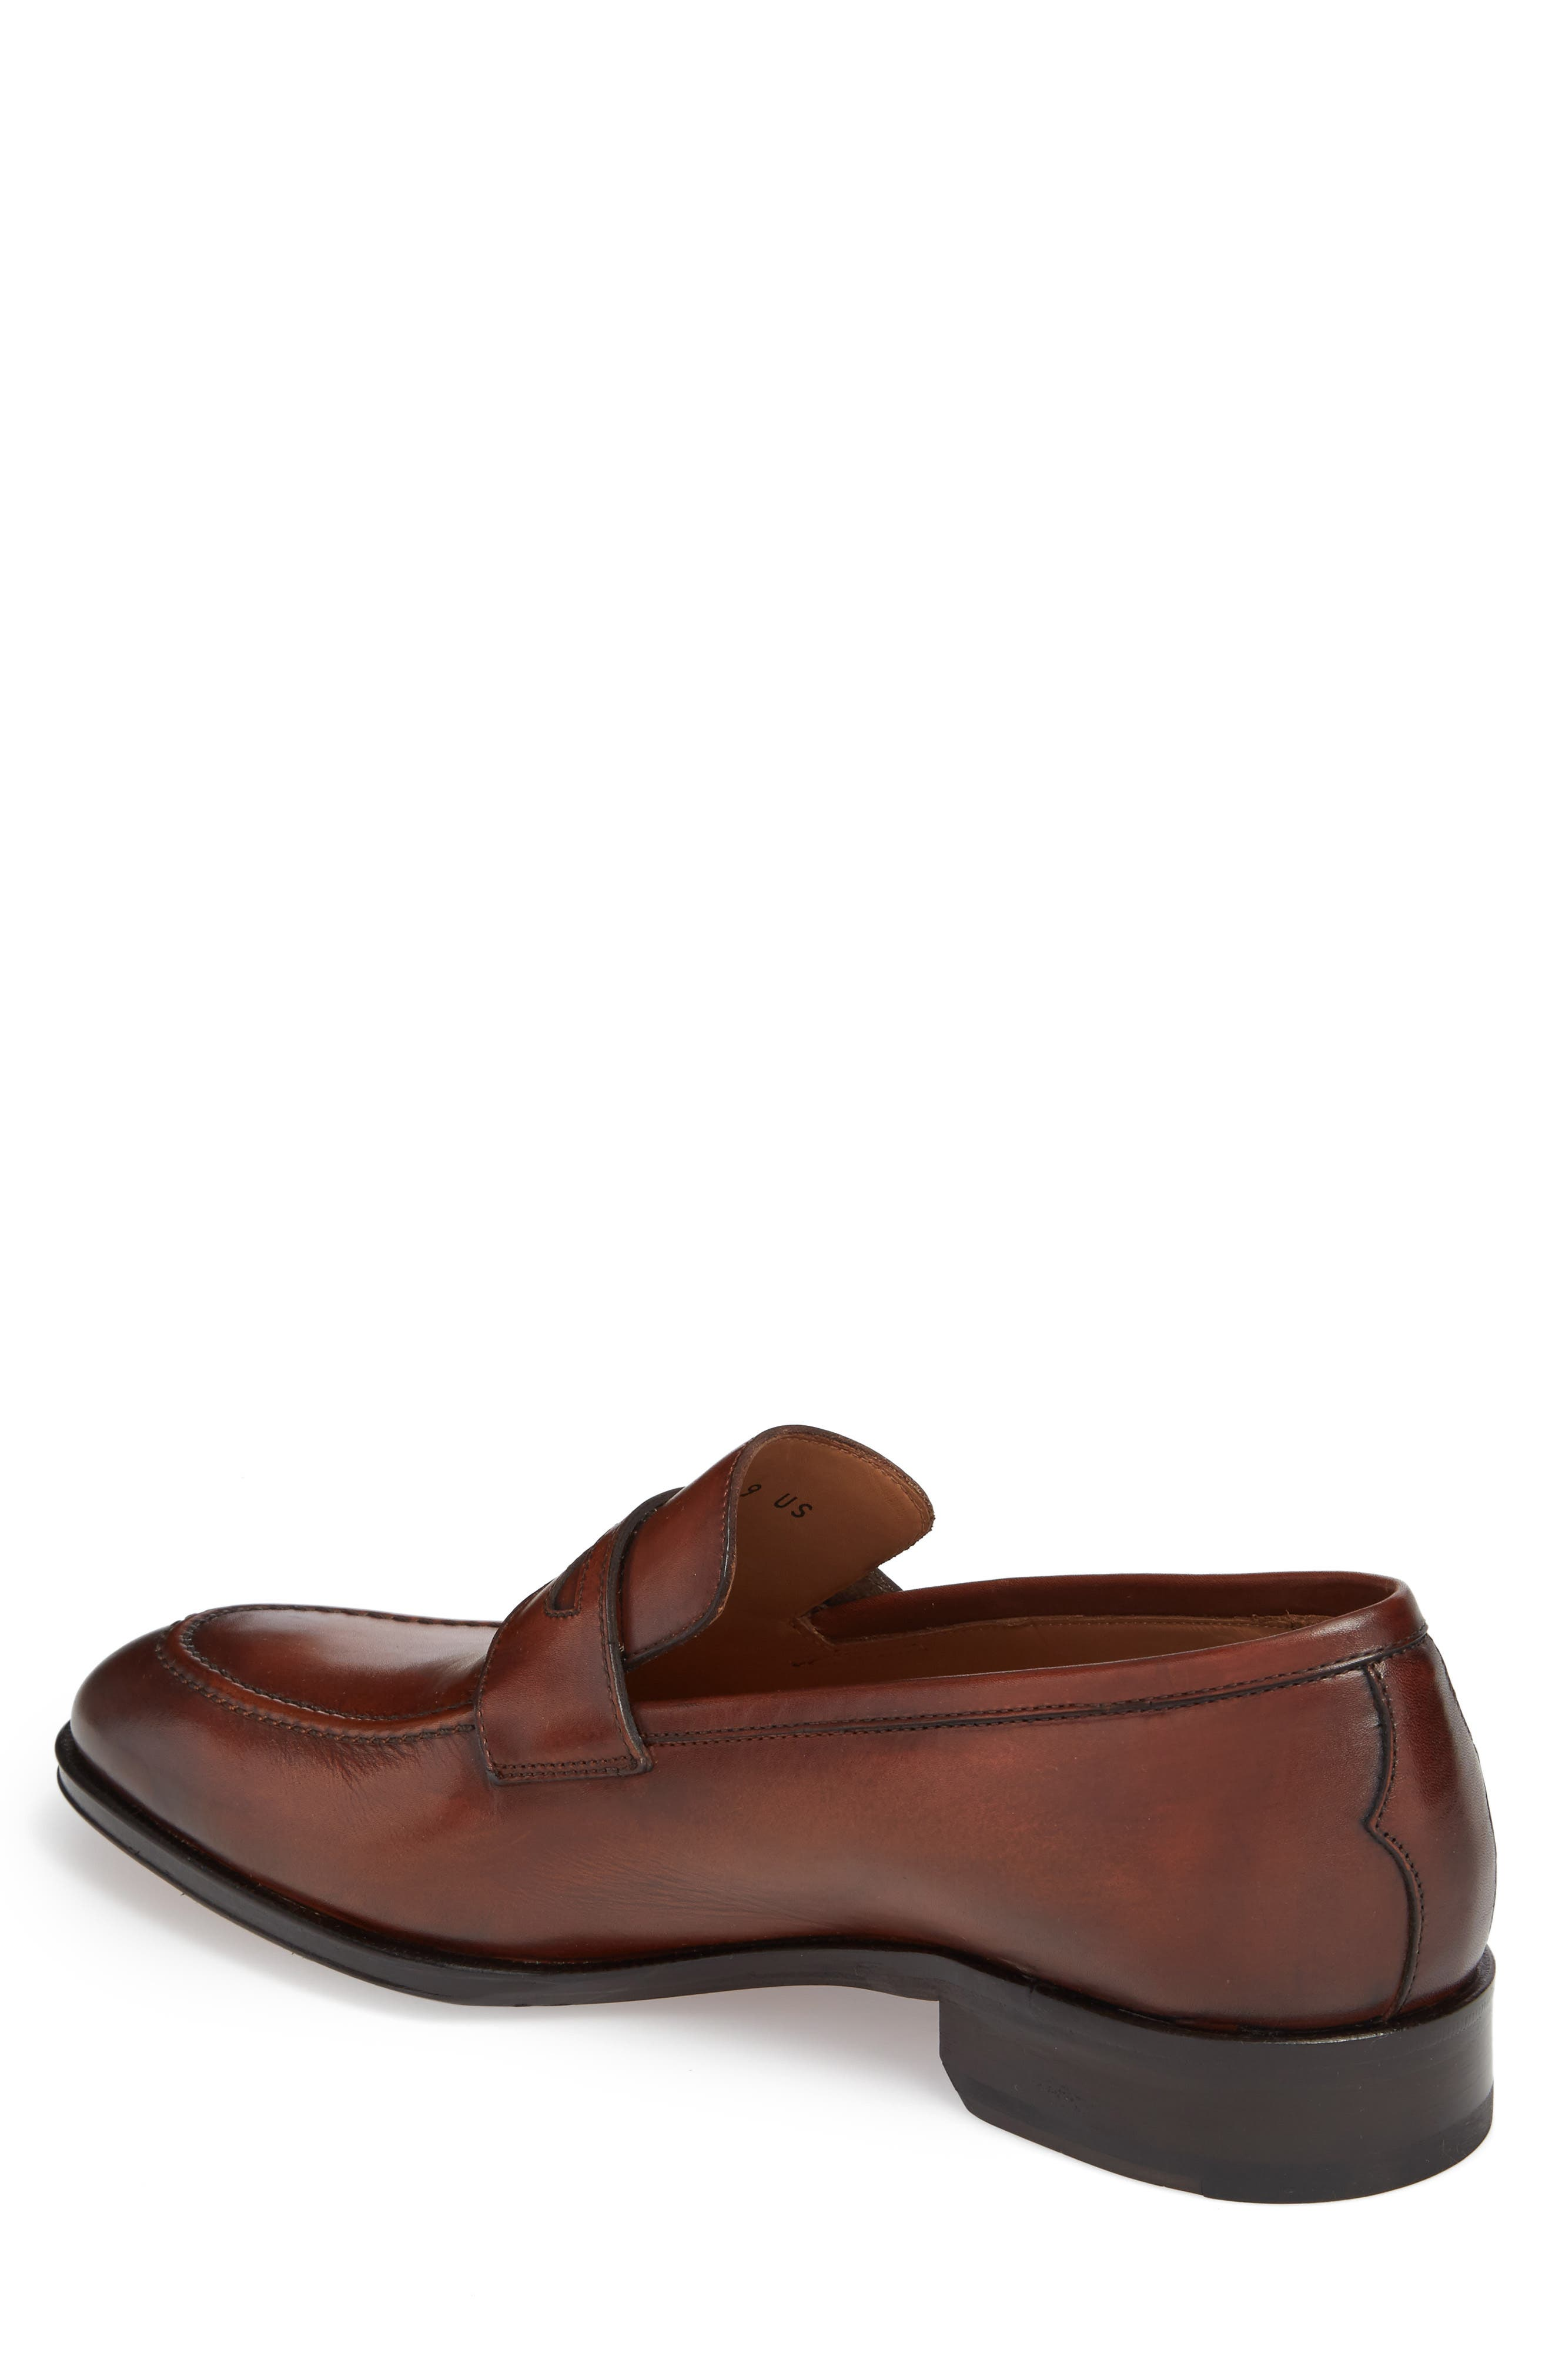 Penny Loafer,                             Alternate thumbnail 2, color,                             Marble Brown